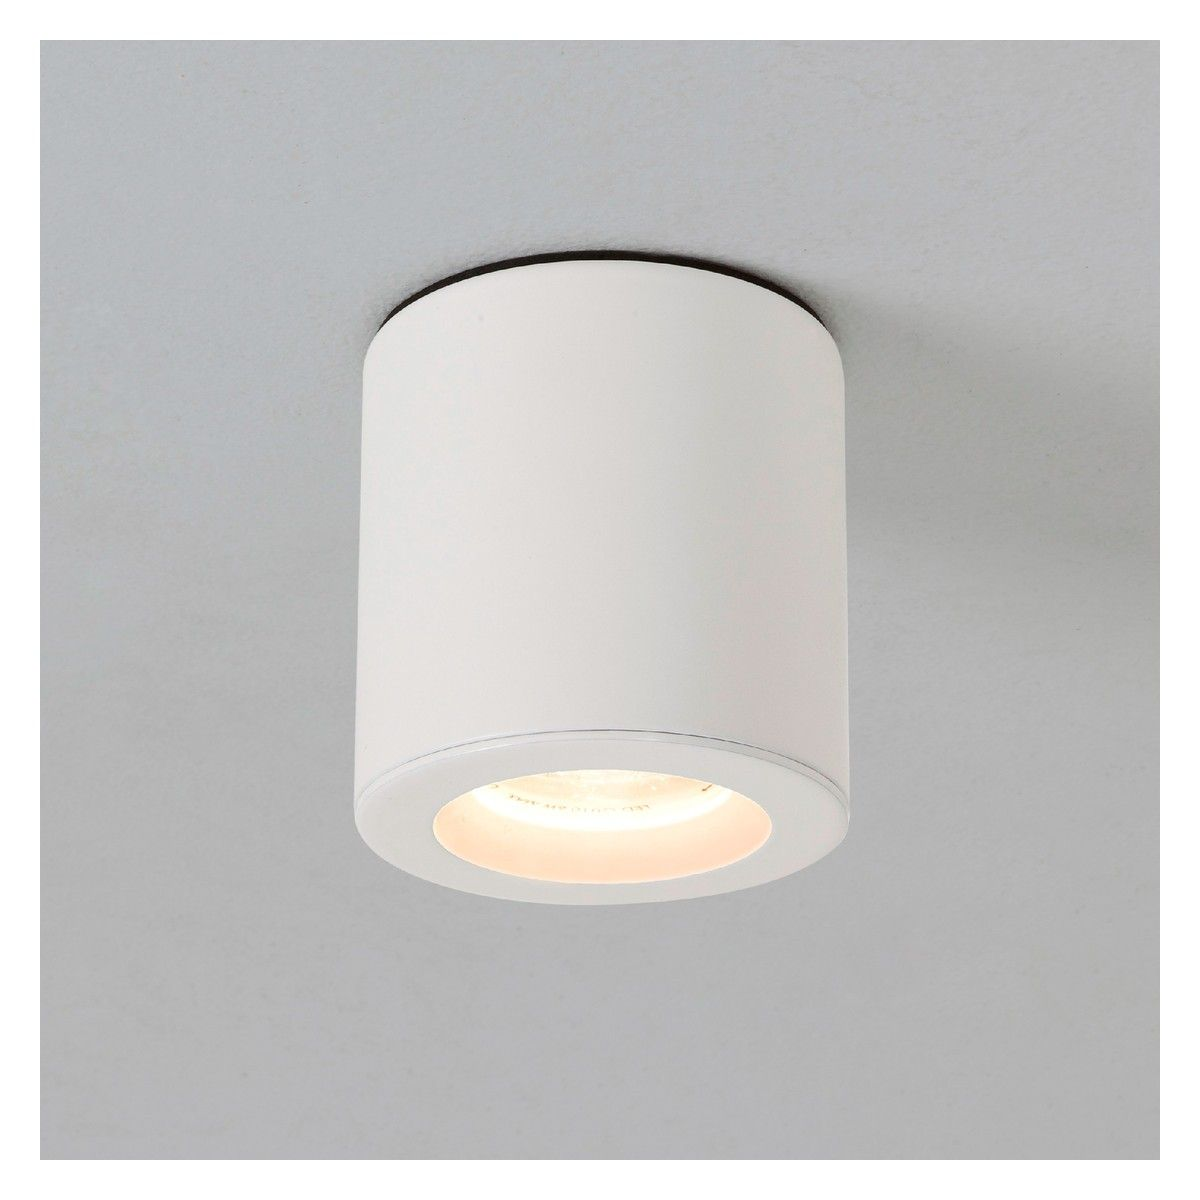 Bathroom Light Ip65 kos white metal bathroom and outdoor ceiling light ip65